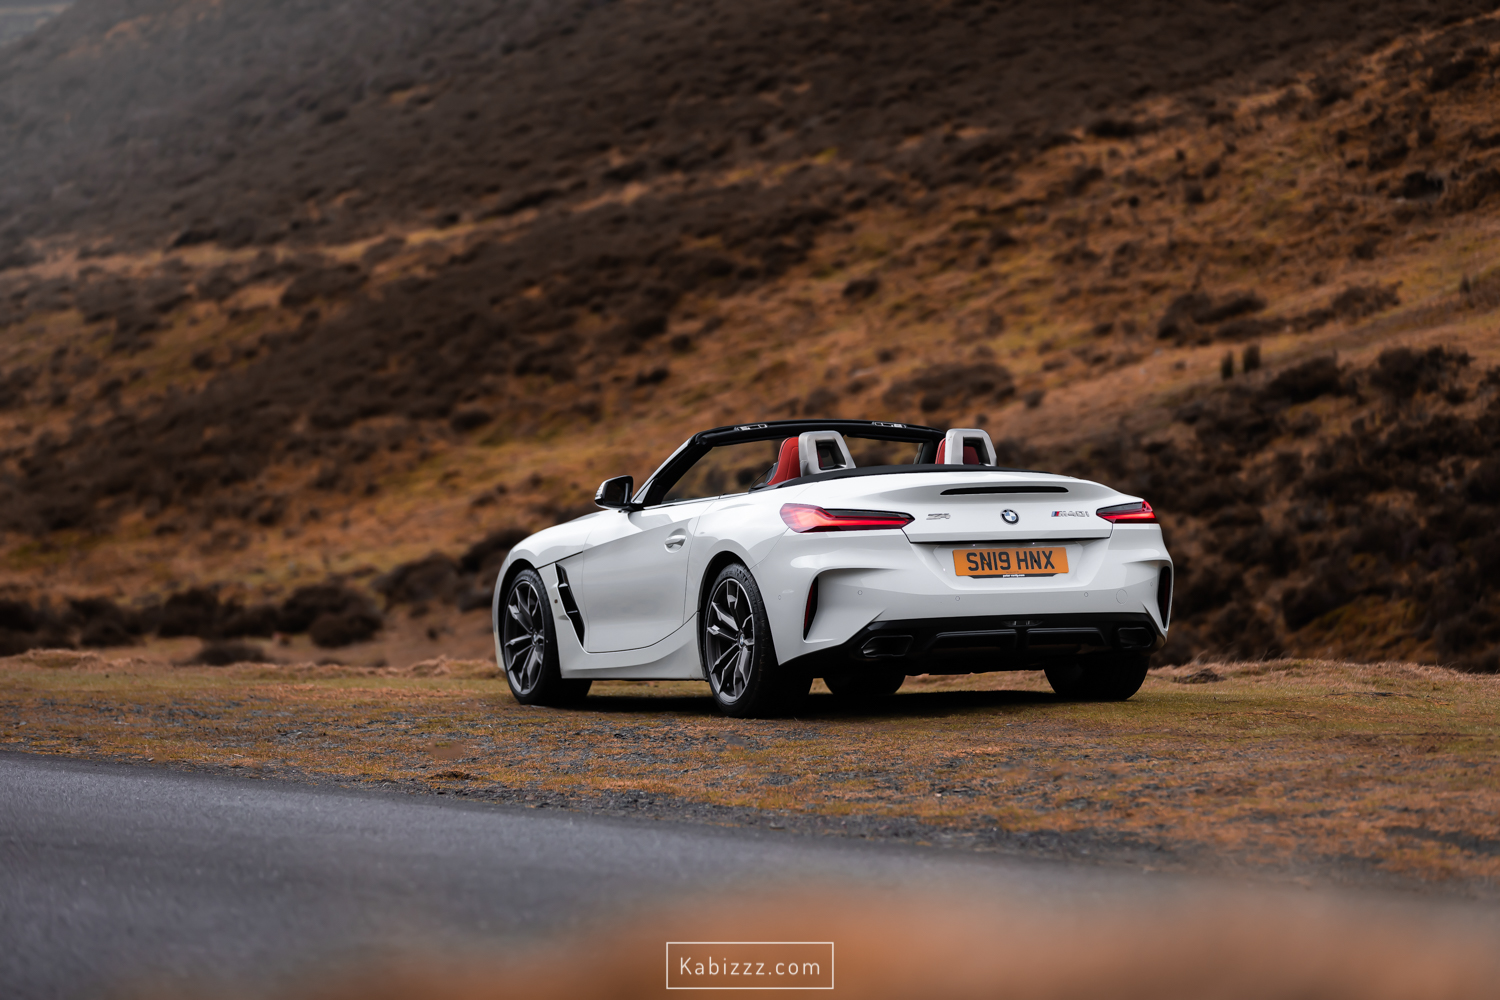 2019_bmw_z4_m40i_automotivephotography_kabizzz-17.jpg